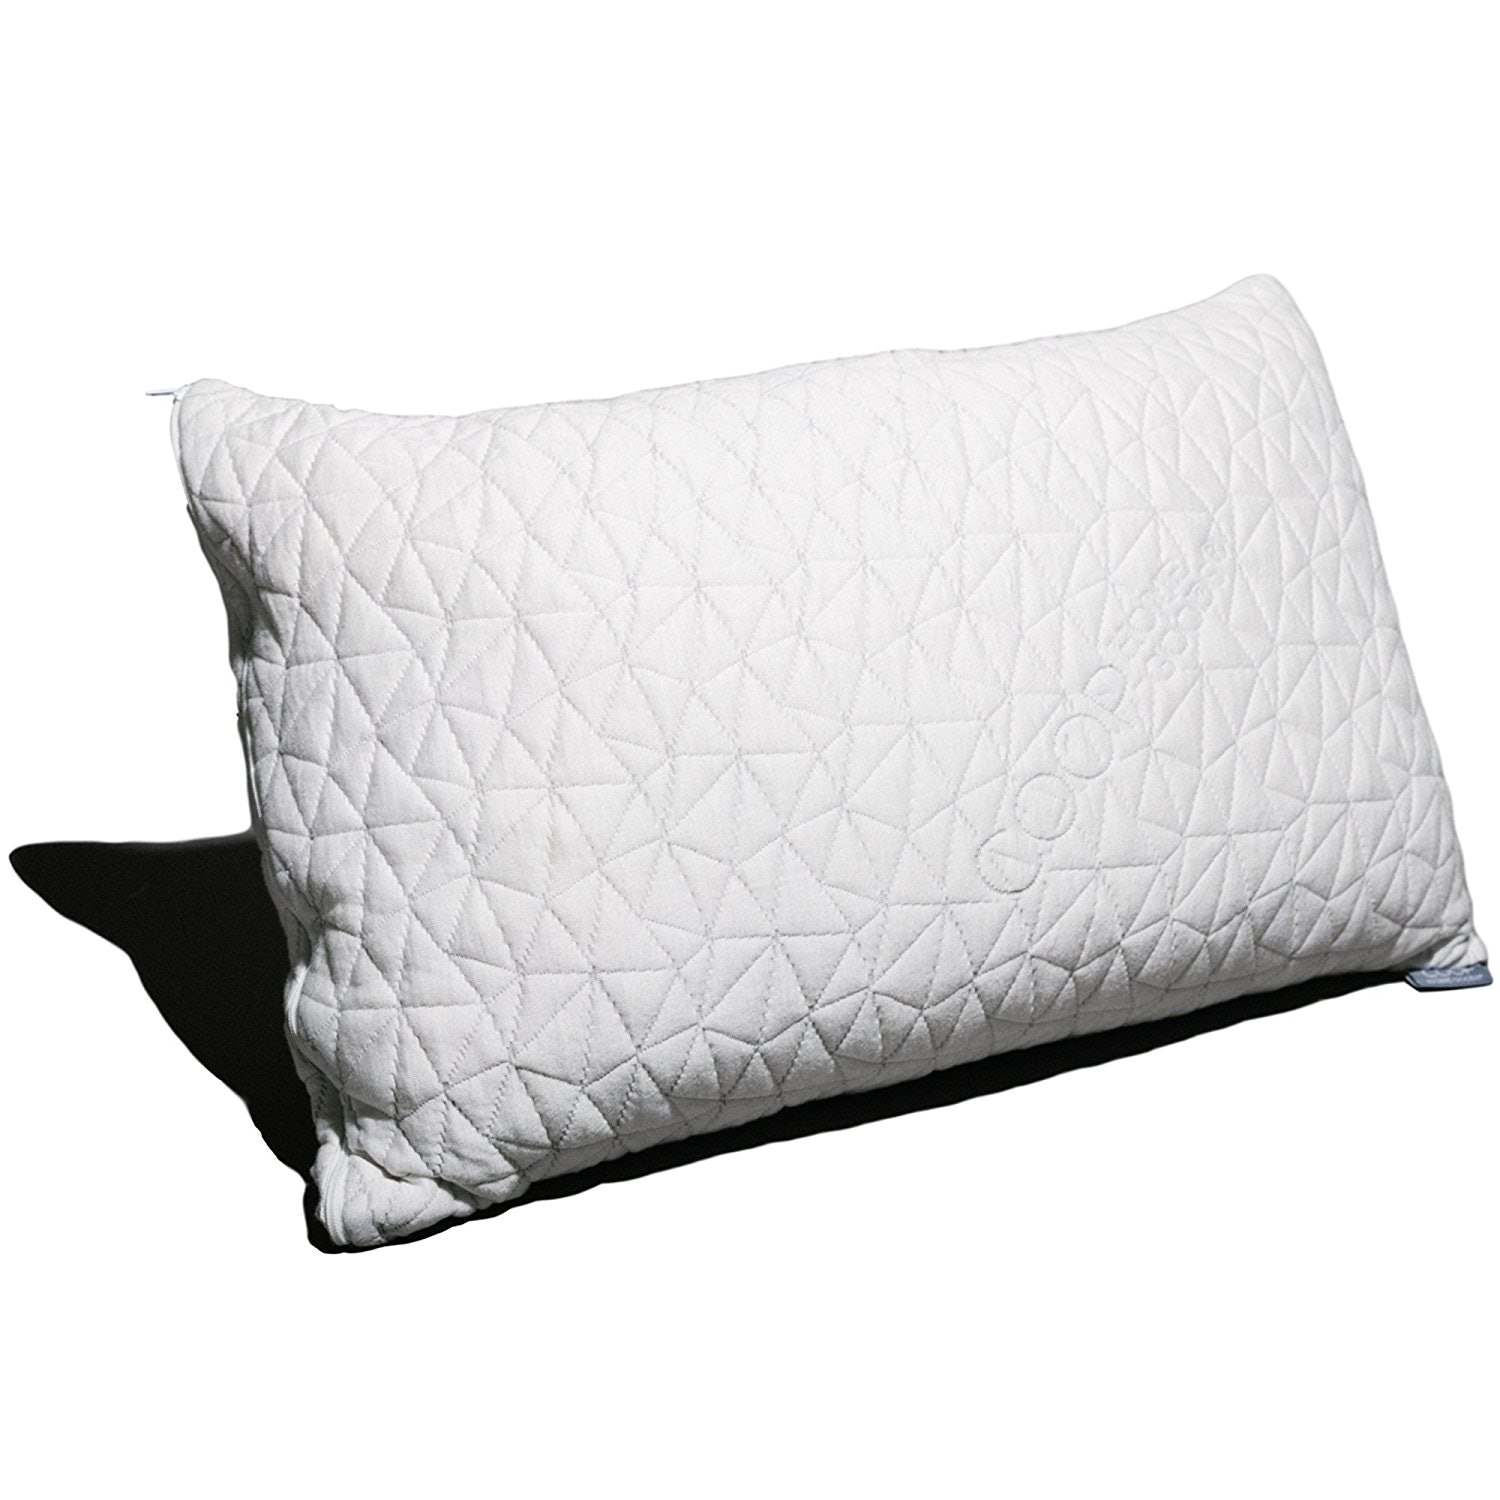 Best Firm Pillow For Side Sleepers The 10 Best Pillows For Side Sleepers